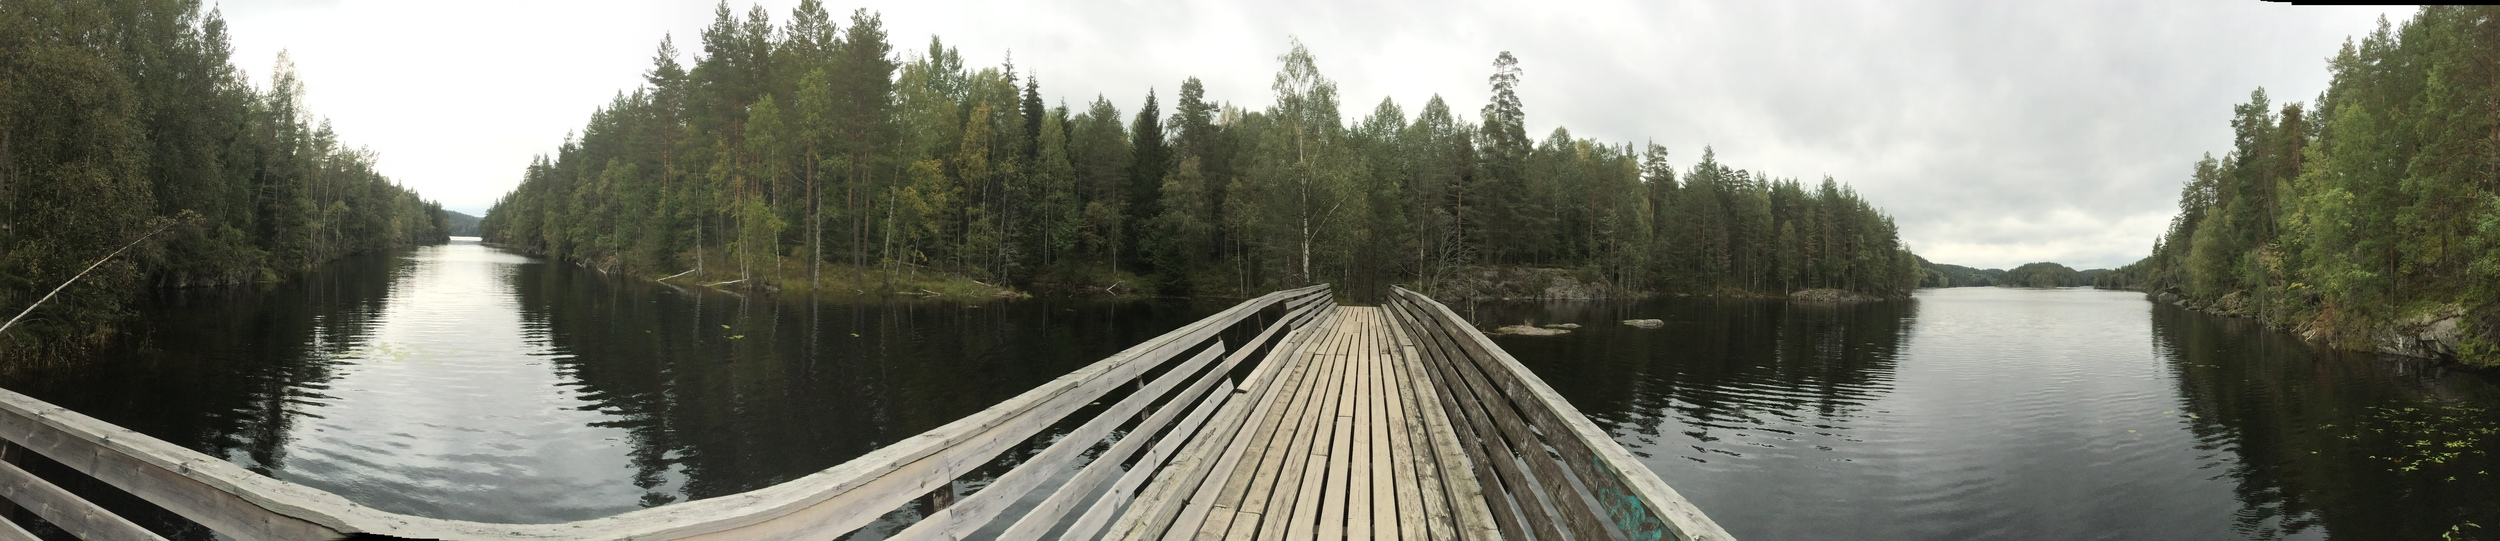 Bridge over Sor Elvaga